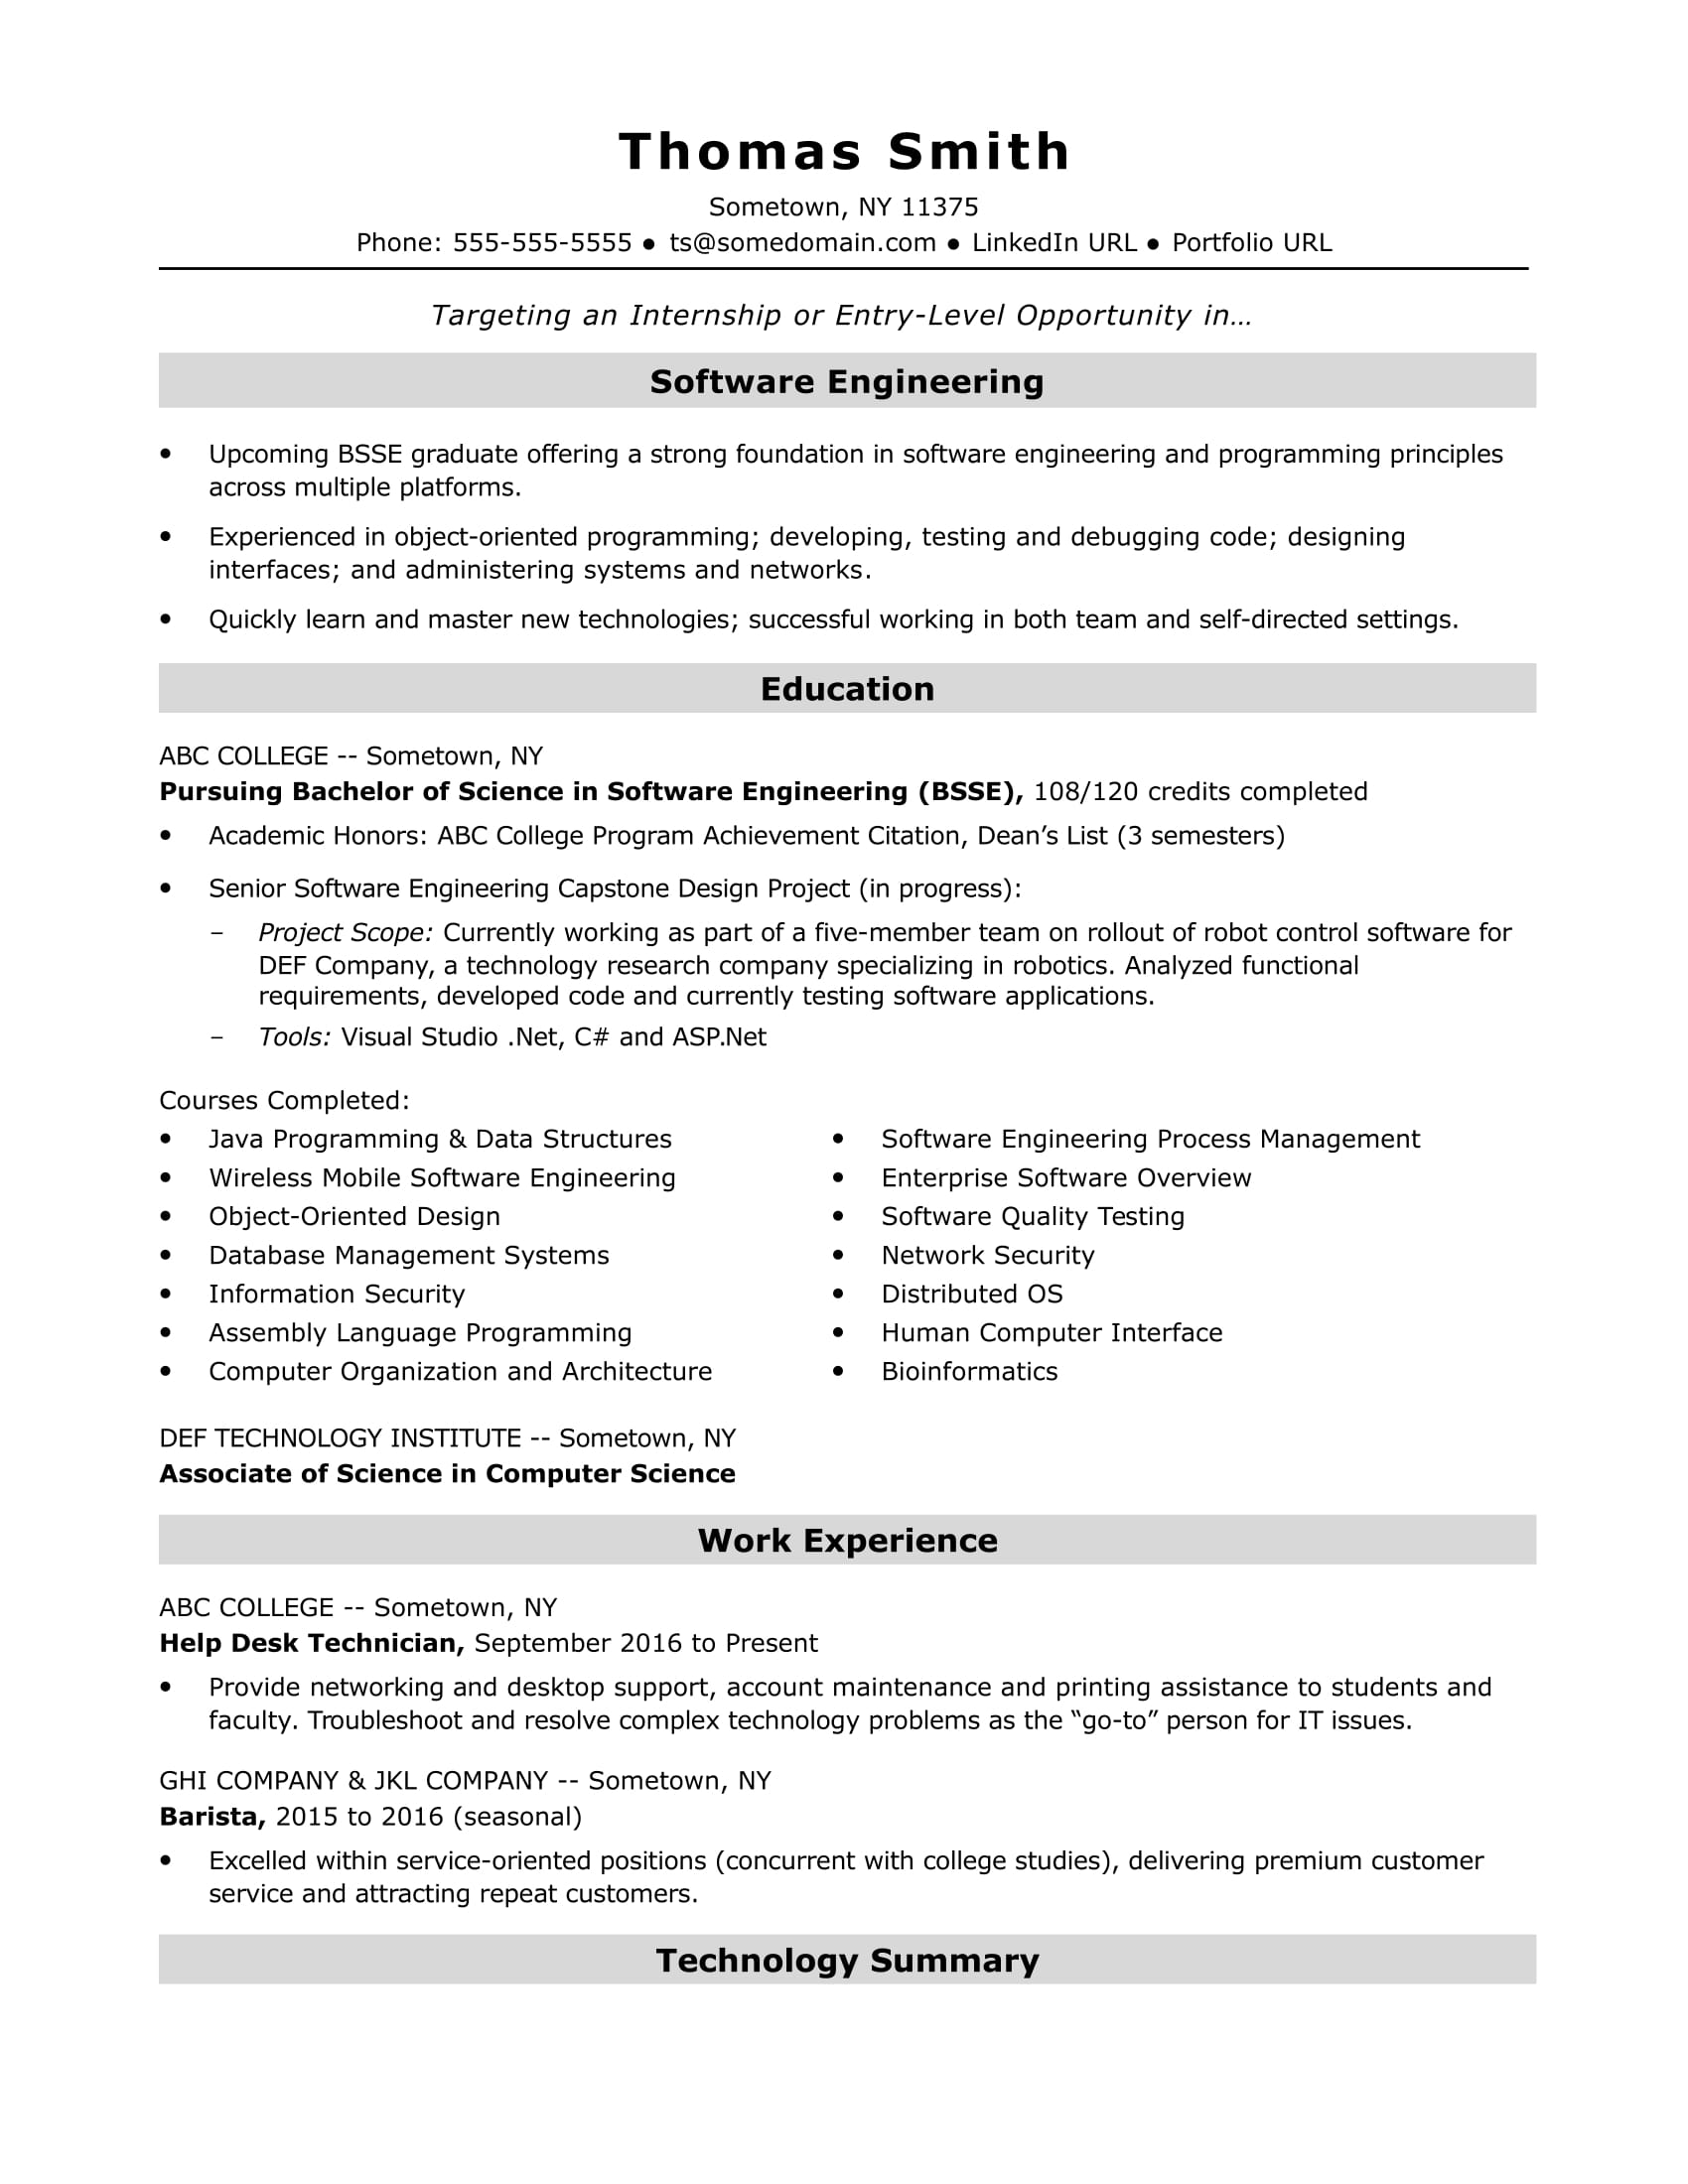 Sample Resume For An Entry Level Software Engineer  Sample Software Developer Resume